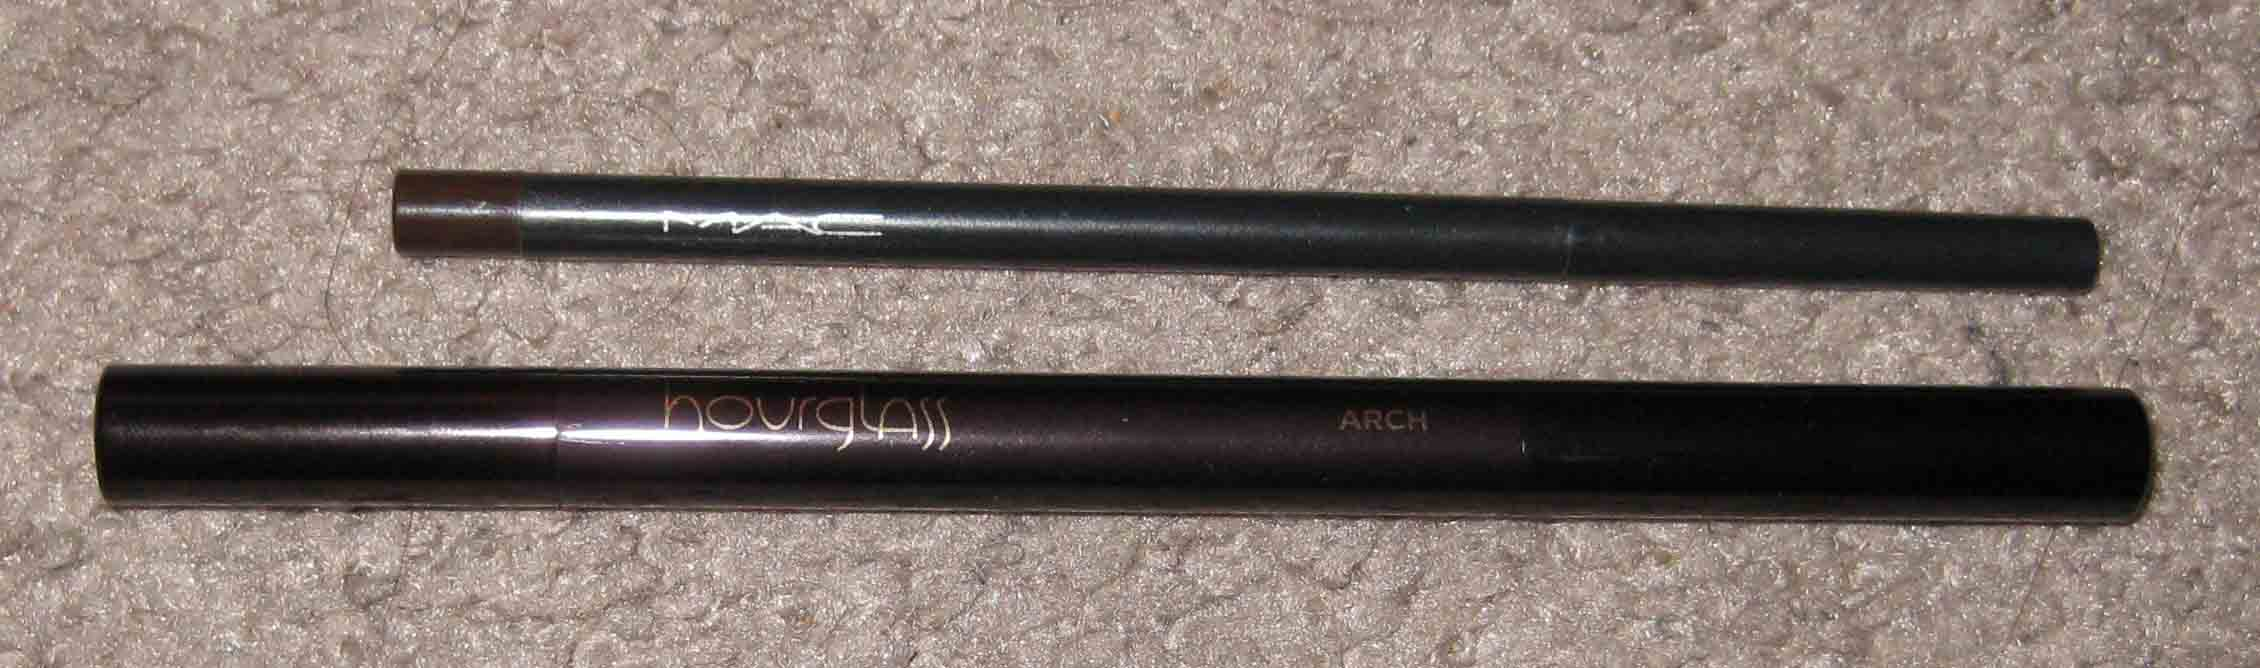 Updated Eyebrow Pencil Dupes Featuring Reviews For Mac Hourglass